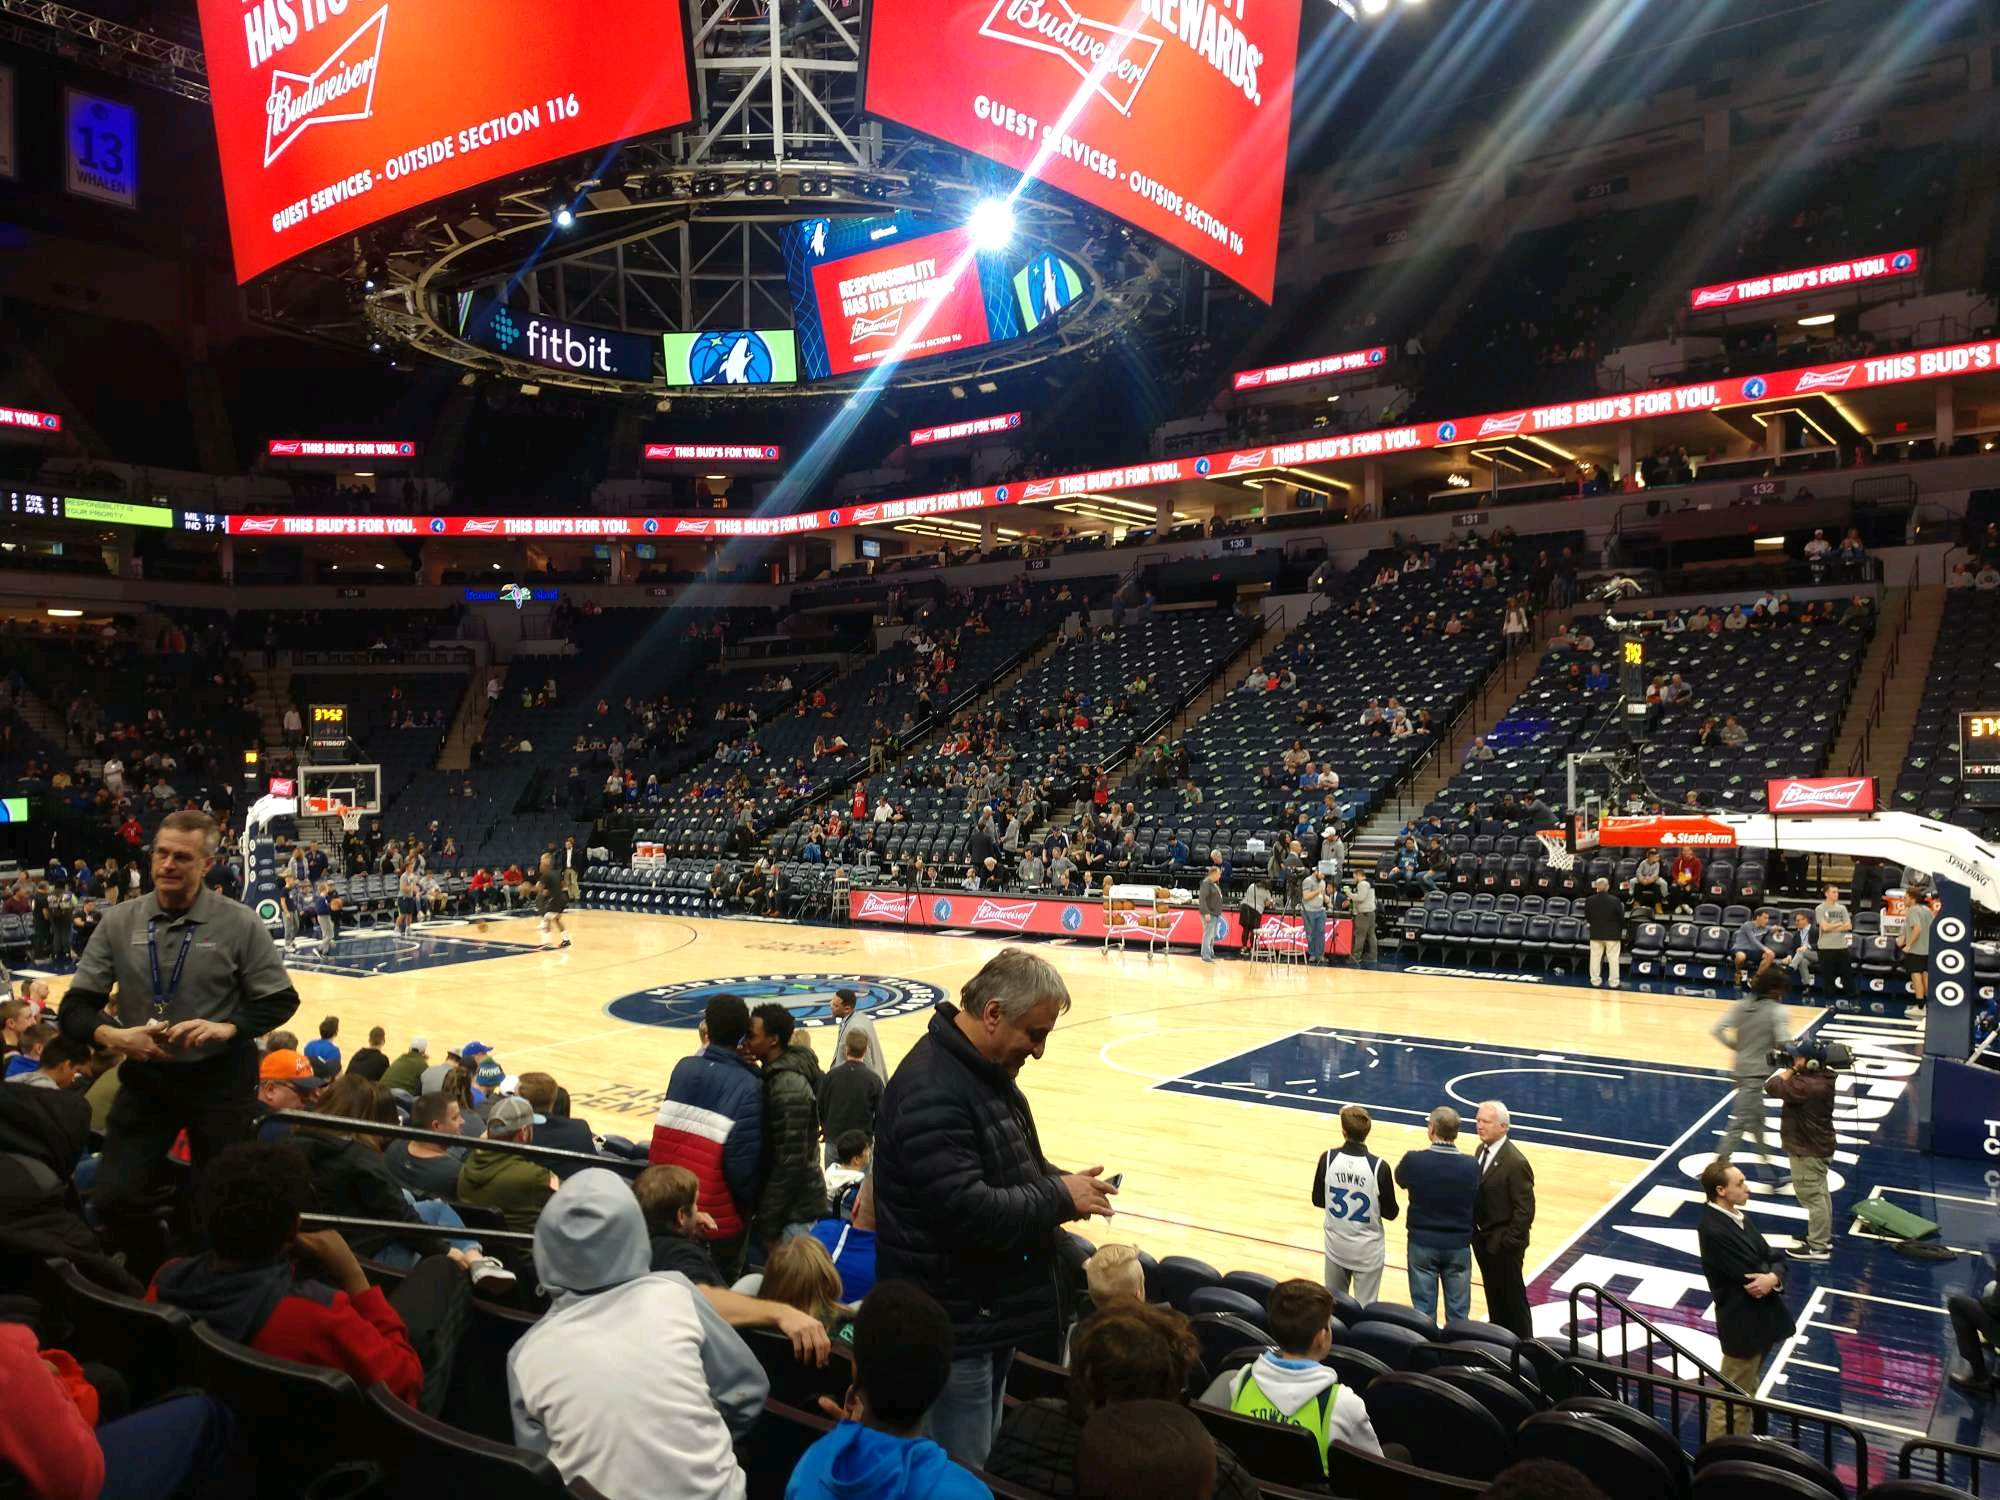 Target Center Section 109 Row F Seat 7